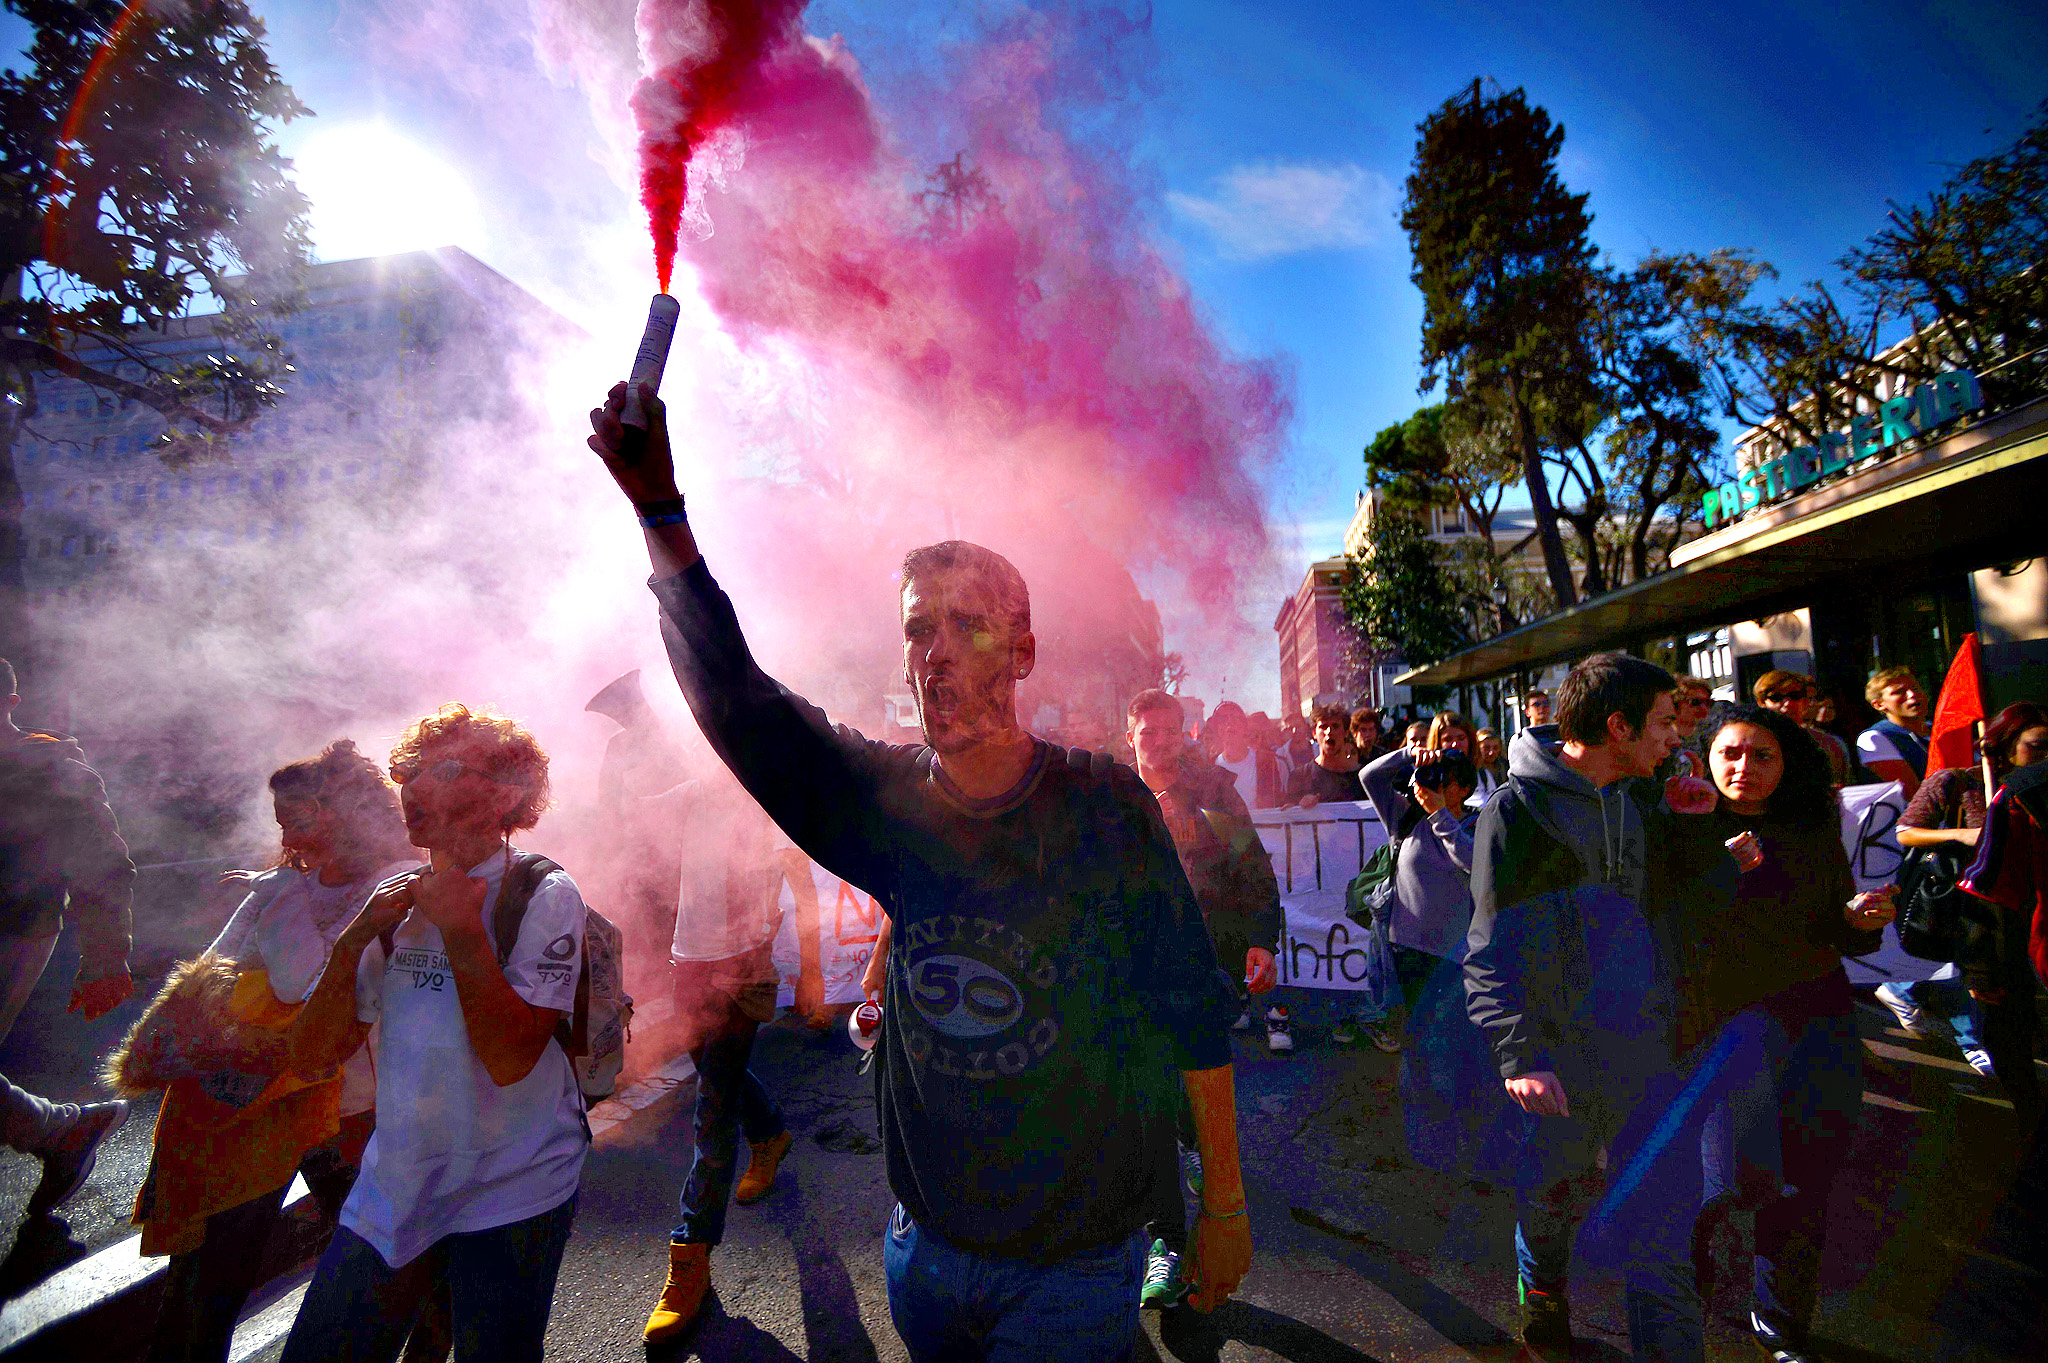 Demonstators hold flares during a demonstration as part of a general strike in central Rome on November 14, 2014.